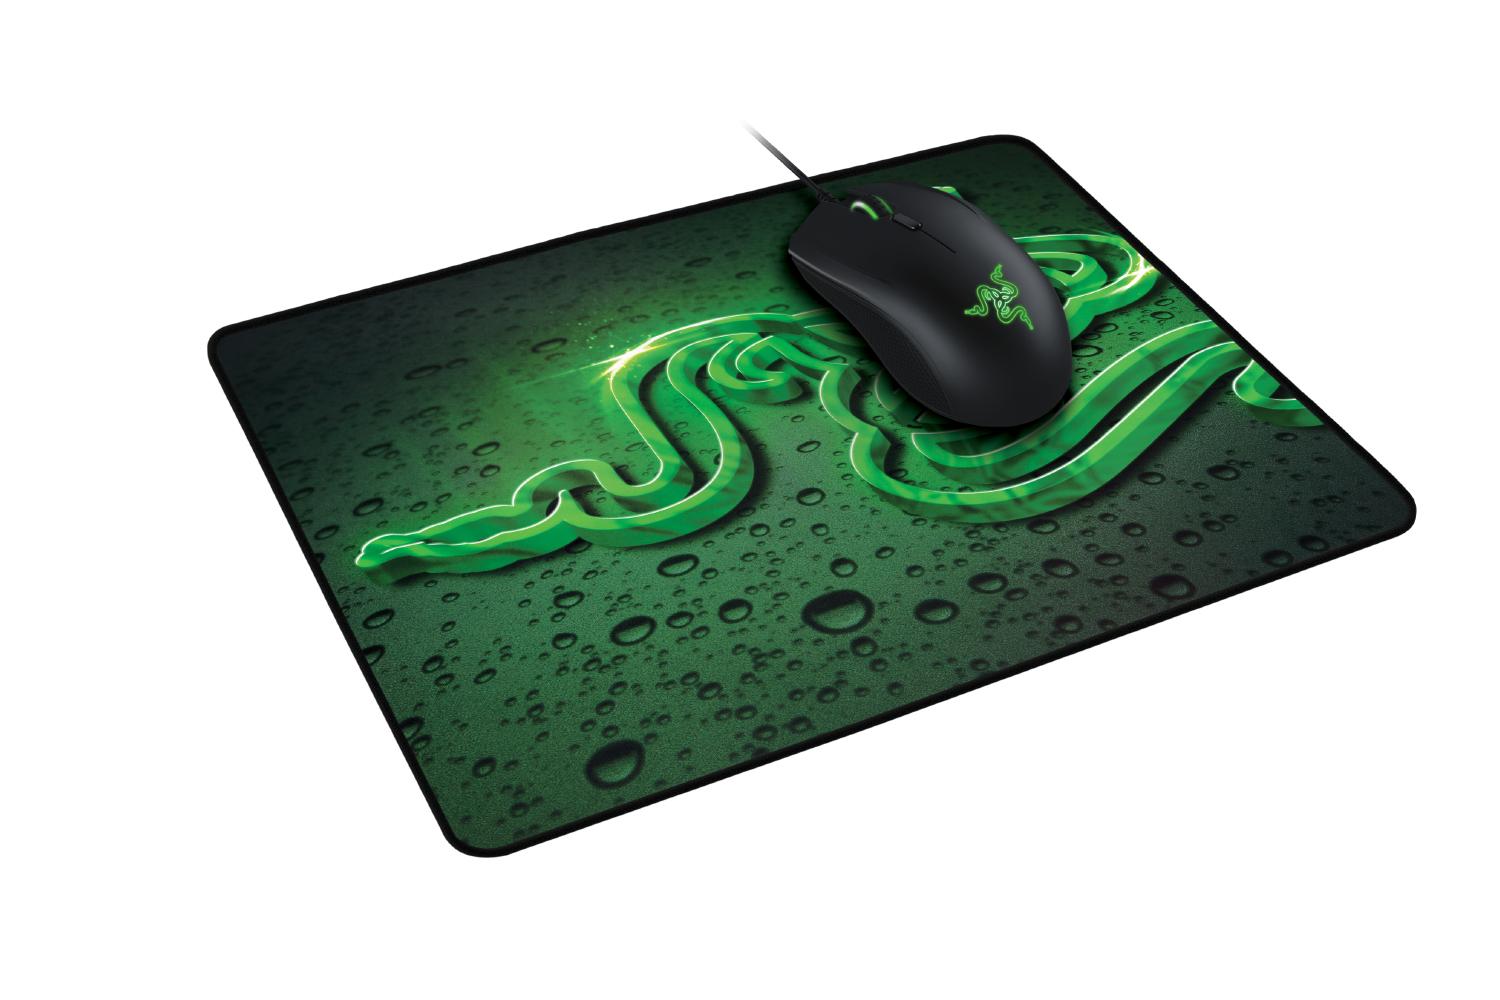 Razer Goliathus Speed Green mouse pad